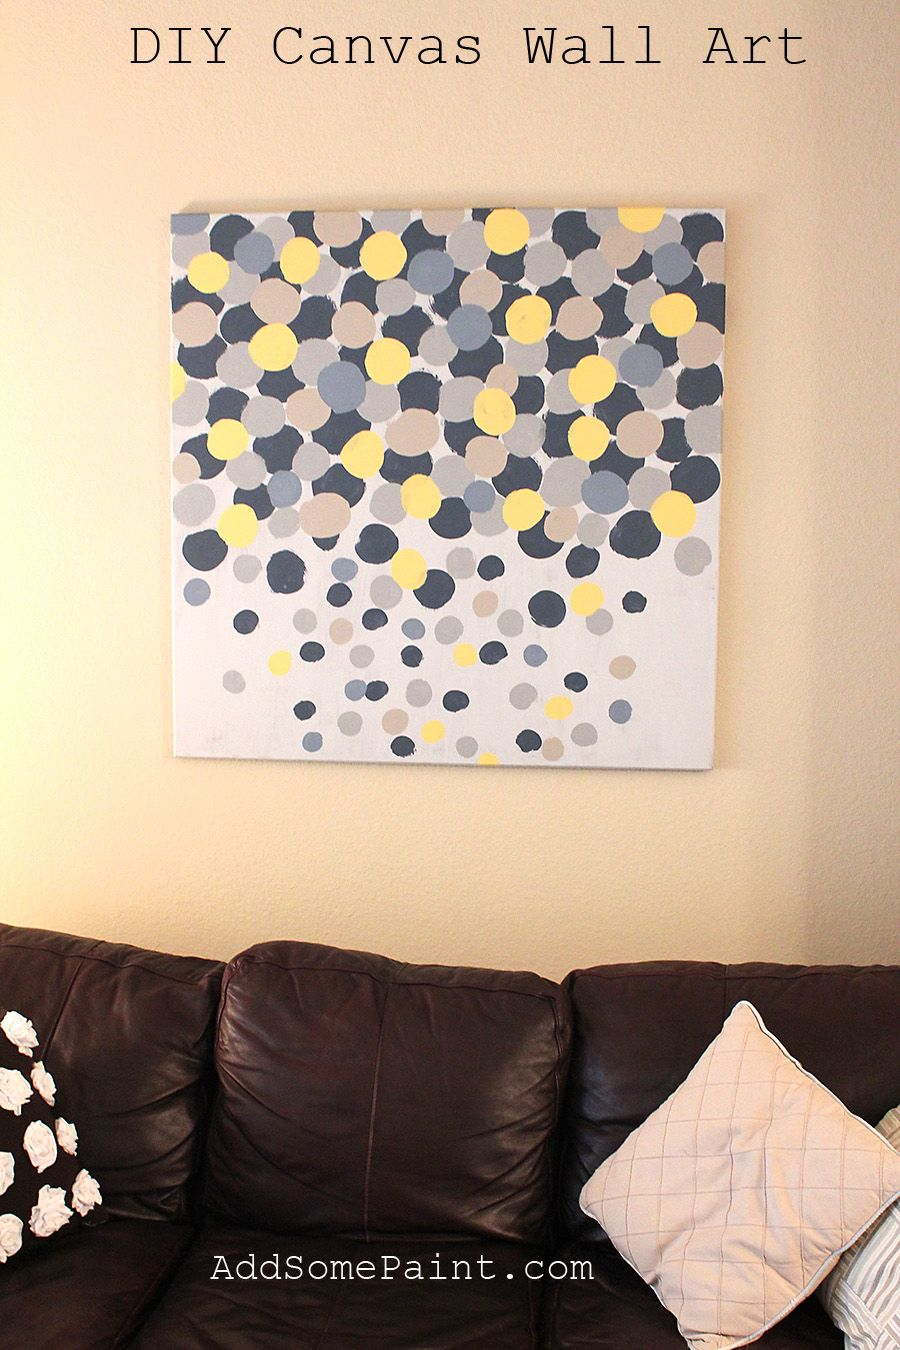 DIY canvas wall art instead of yellow I used a light bluetealish